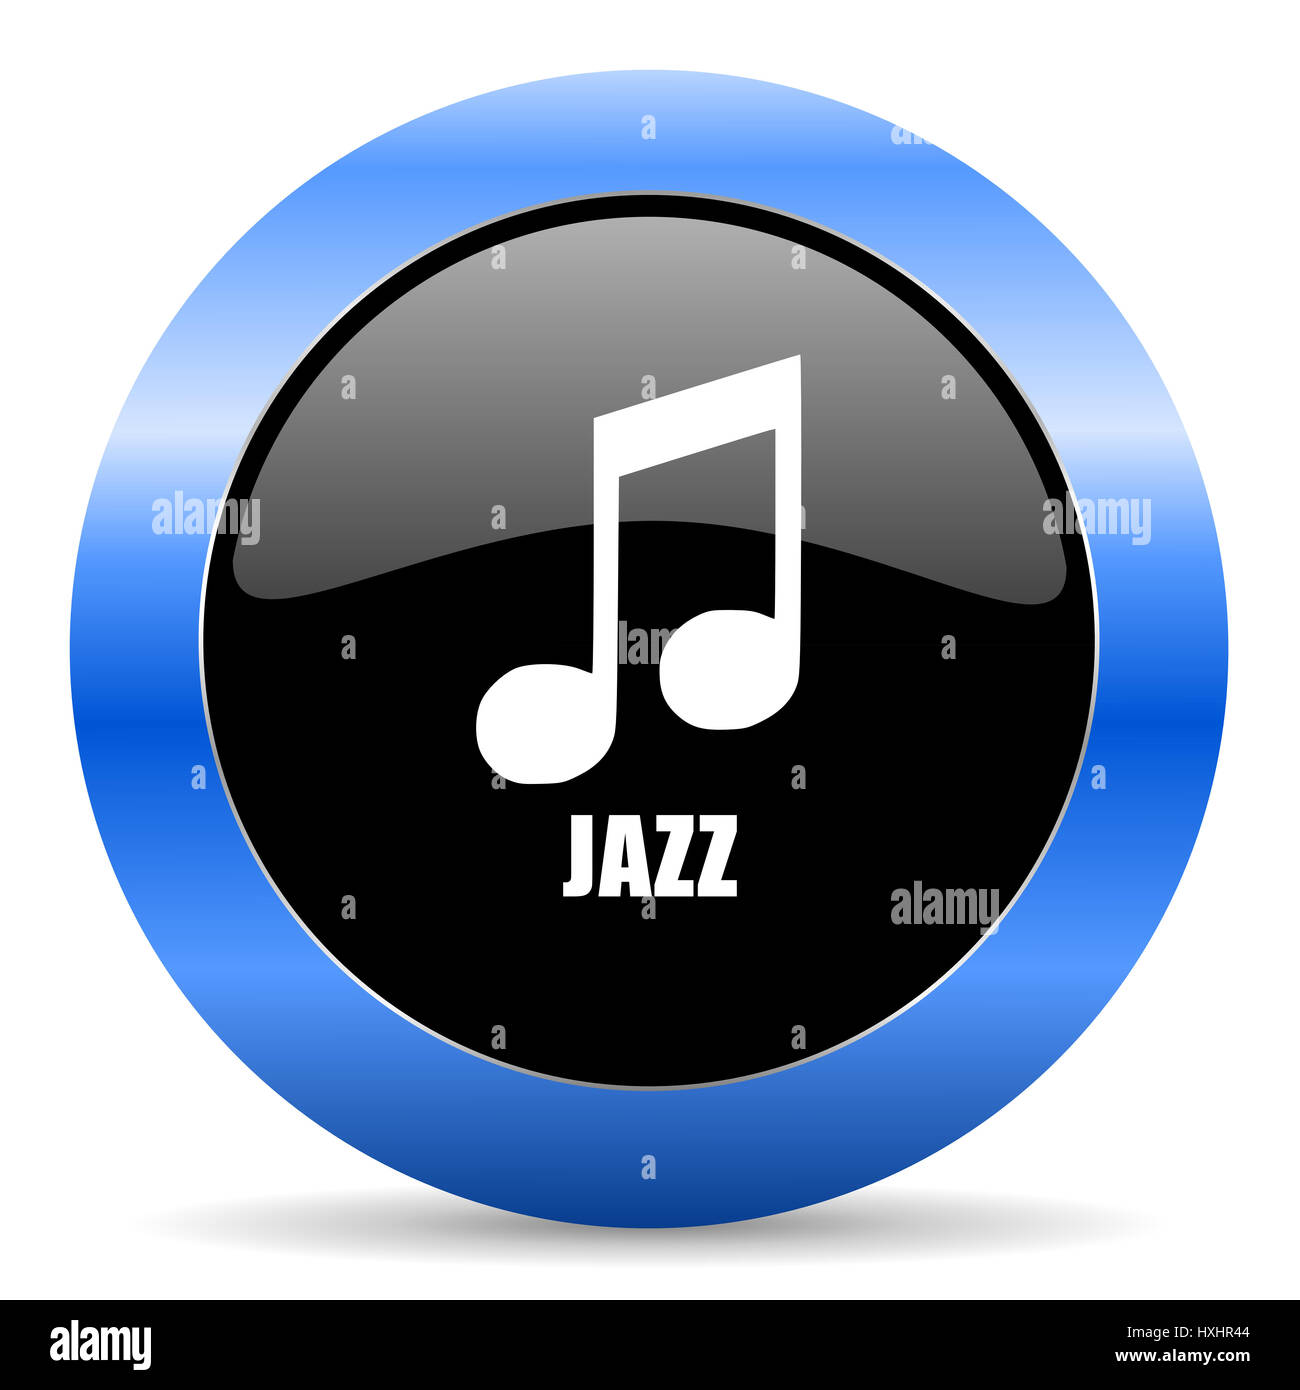 Jazz music black and blue web design round internet icon with shadow on white background. - Stock Image